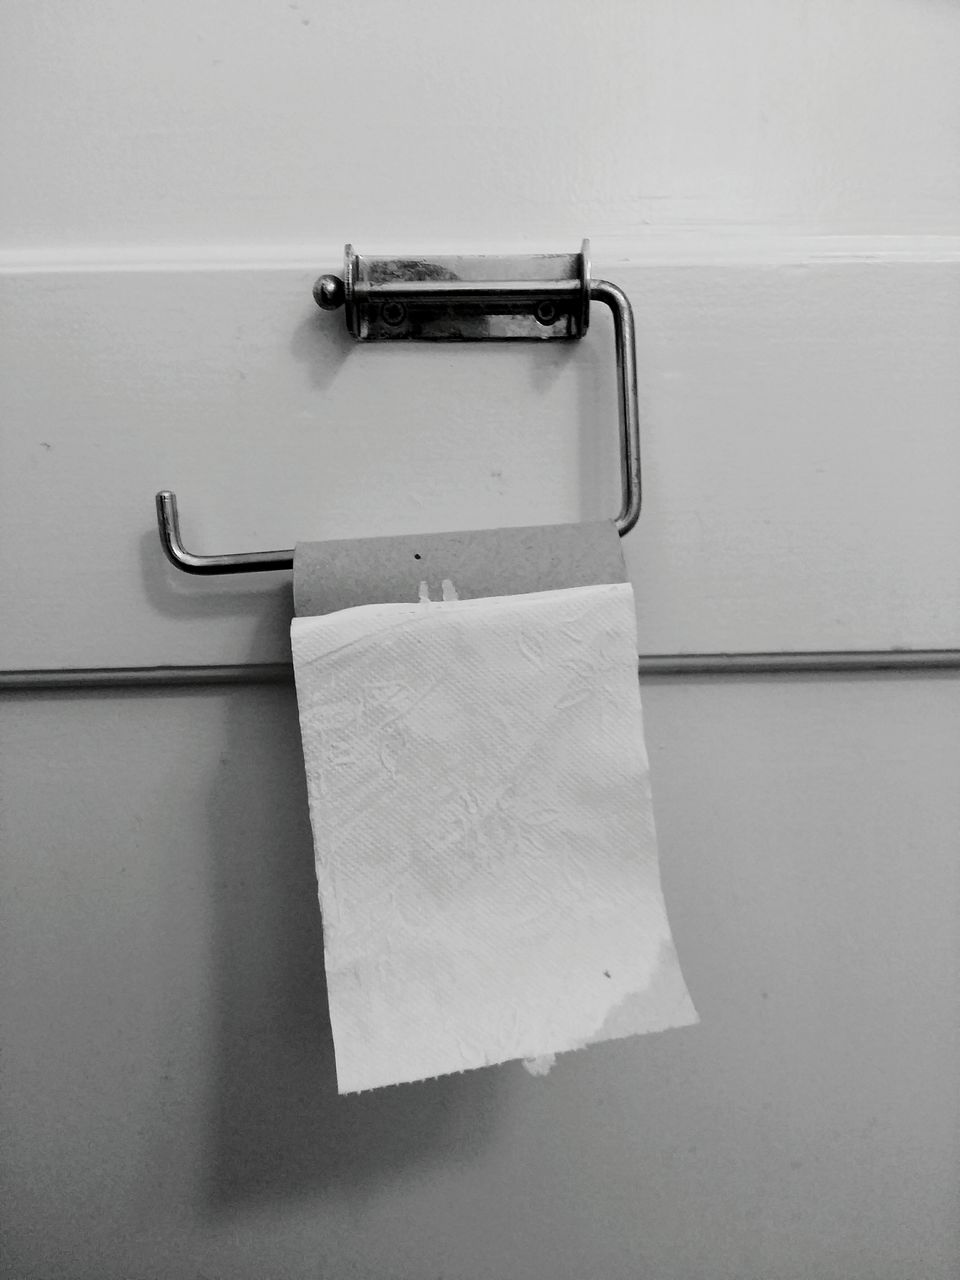 toilet roll holder, toilet paper, indoors, no people, close-up, hygiene, domestic room, bathroom, day